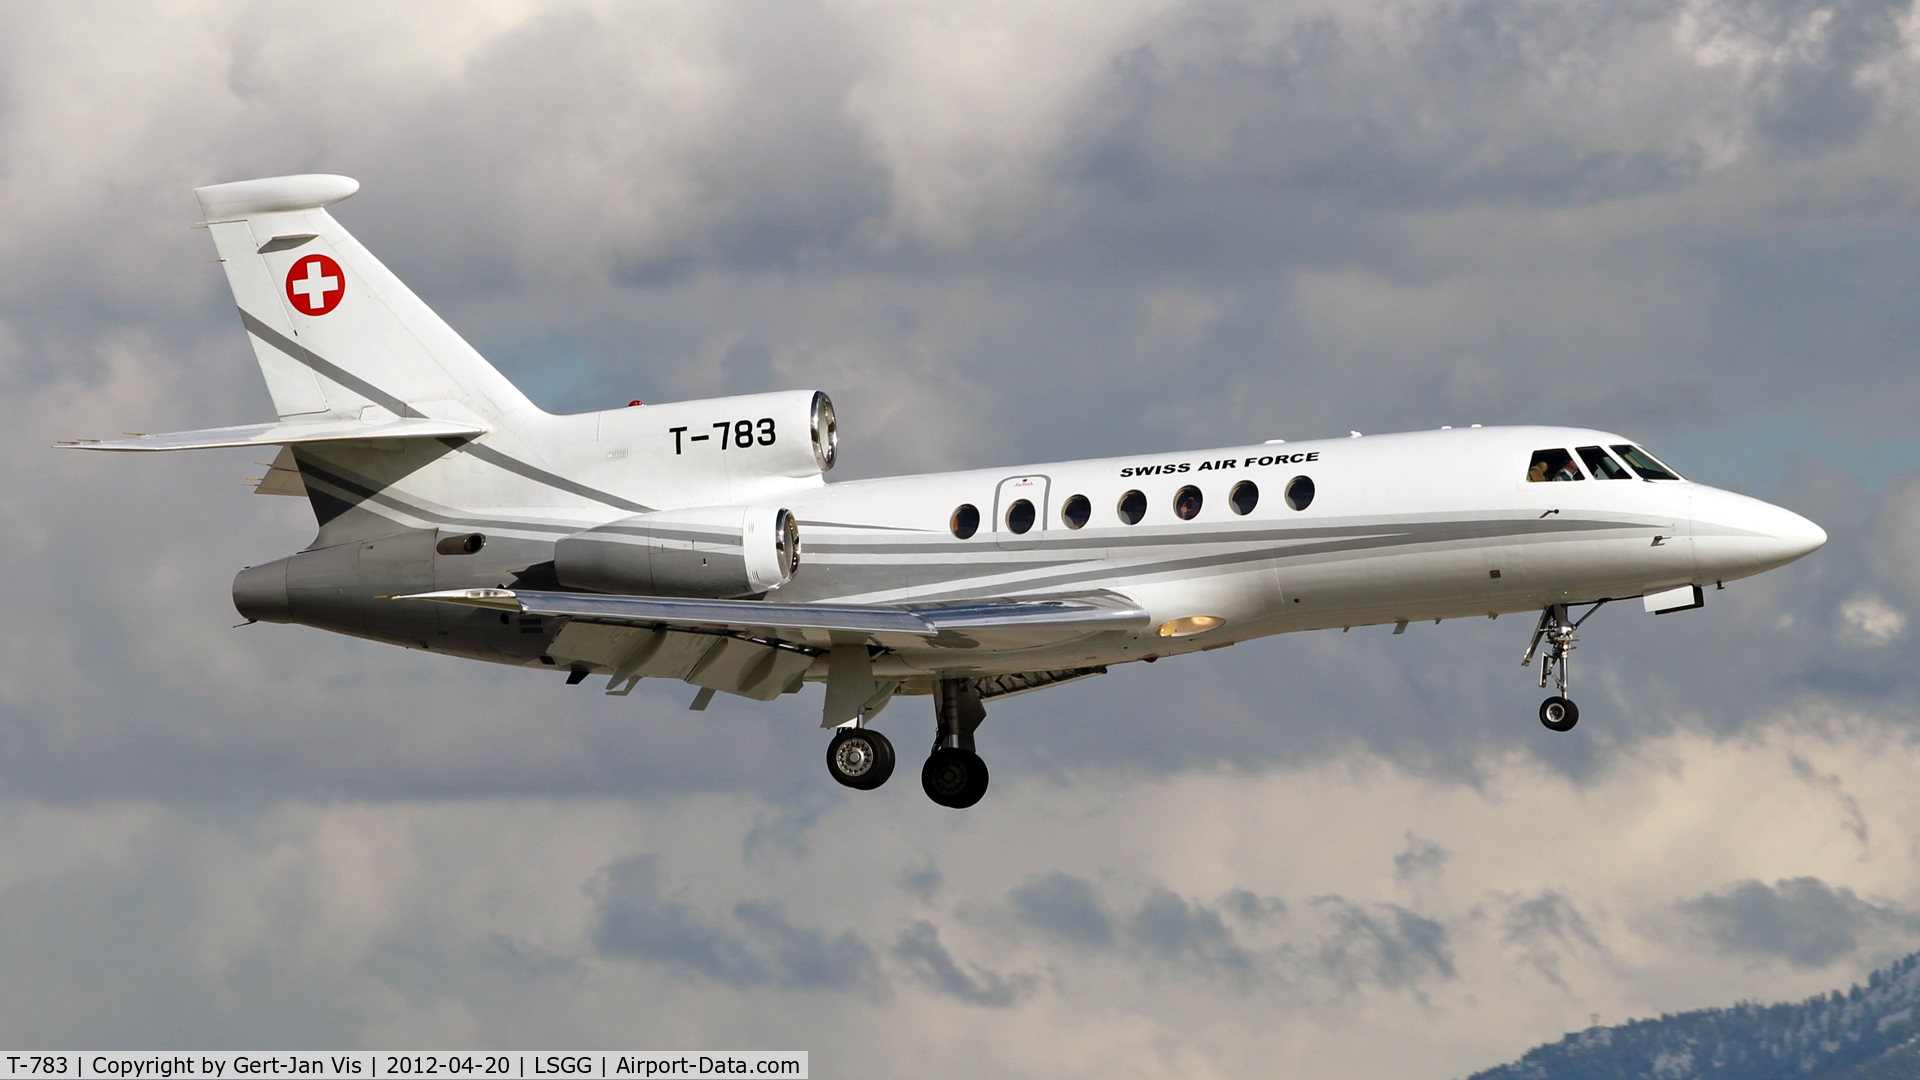 T-783, Dassault Falcon 50 C/N 67, About to land rw23